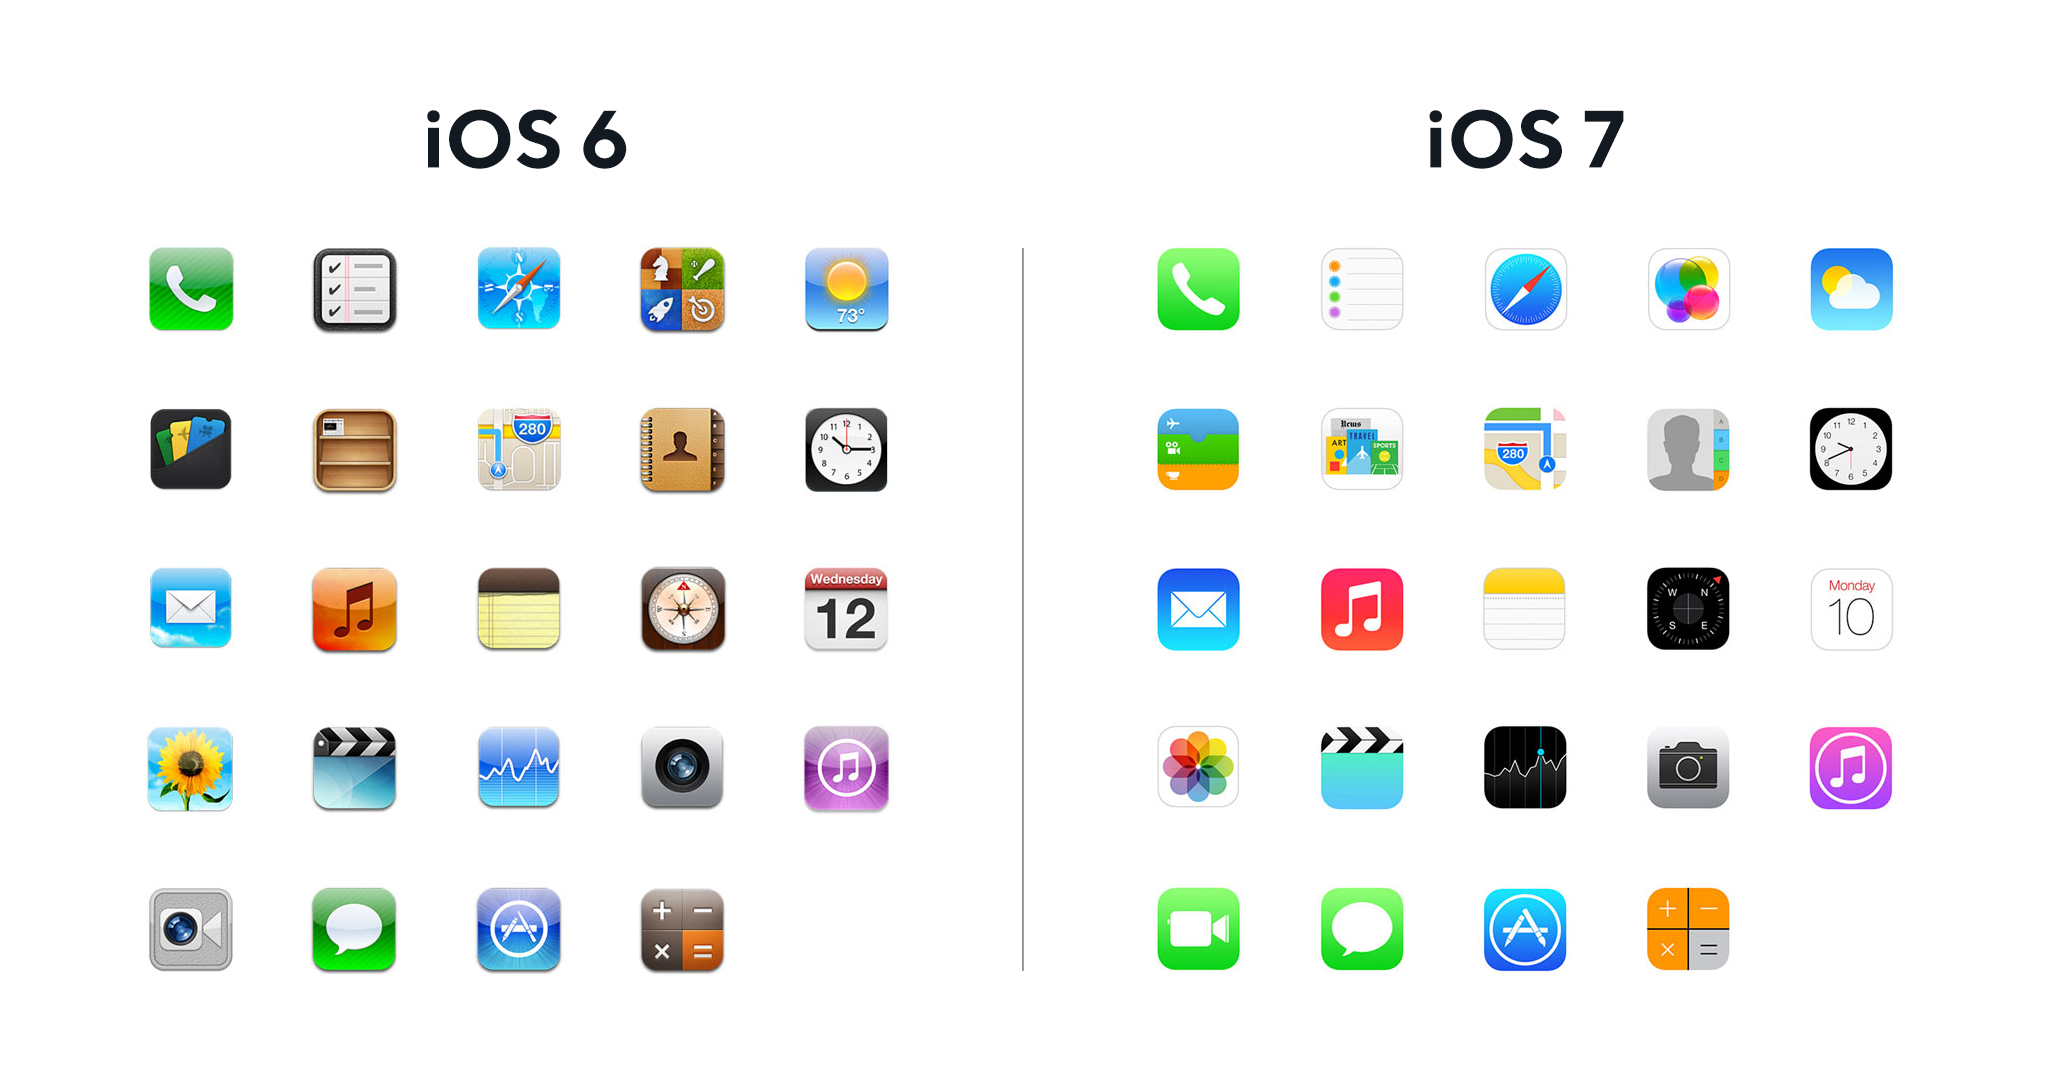 A side by side graphic showing iOS 6 applications versus iOS 7 applications